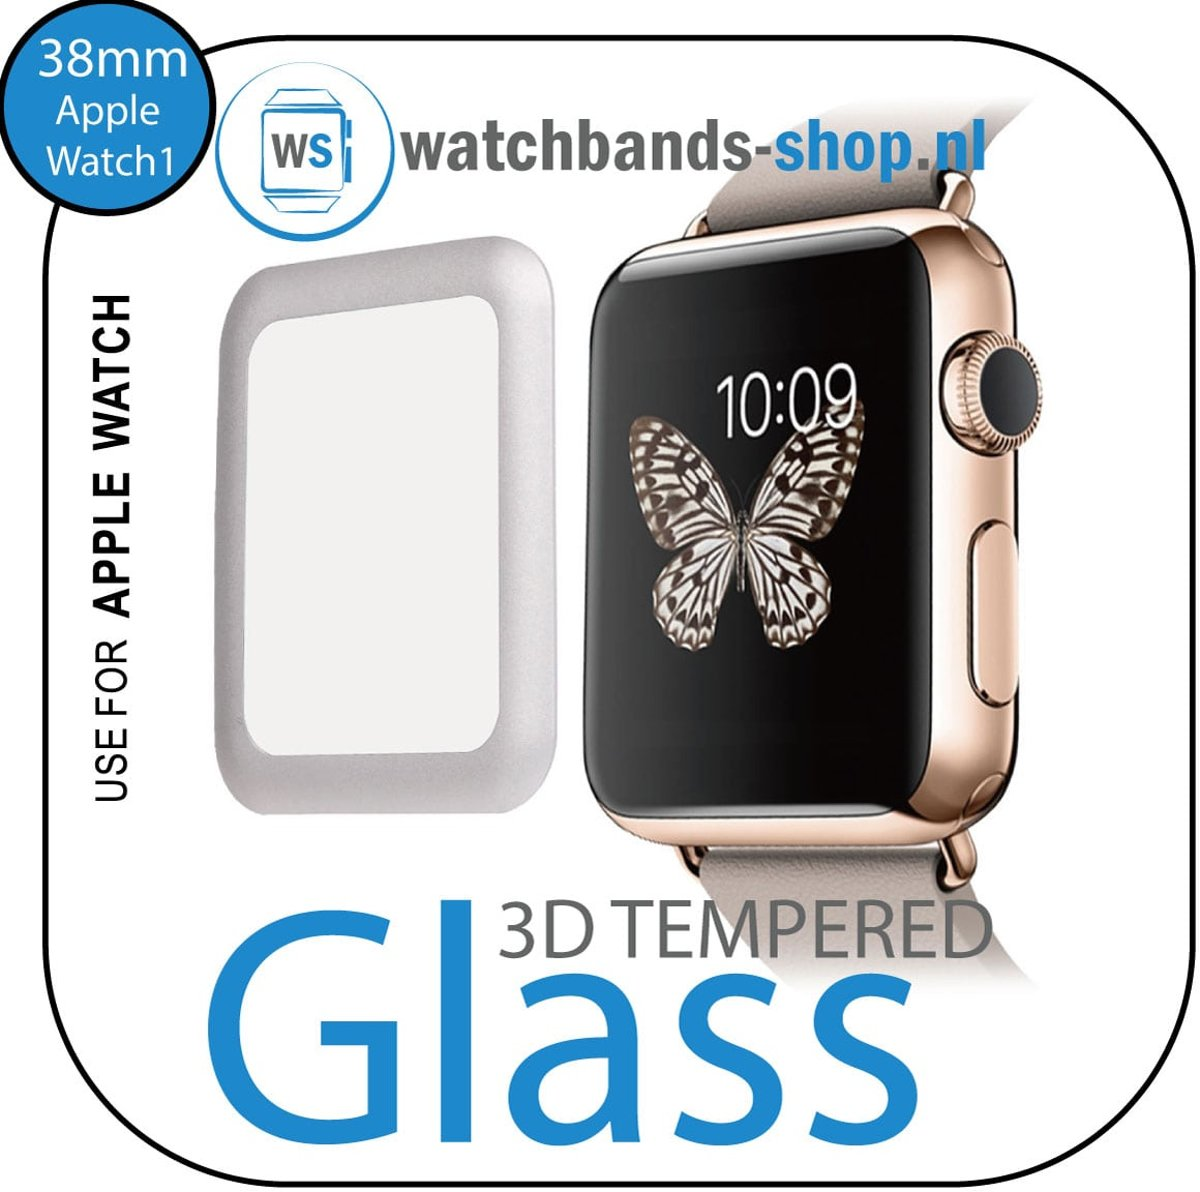 Watchbands-shop.nl 38mm full Cover 3D Tempered Glass Screen Protector For Apple watch / iWatch 1 silver edge kopen